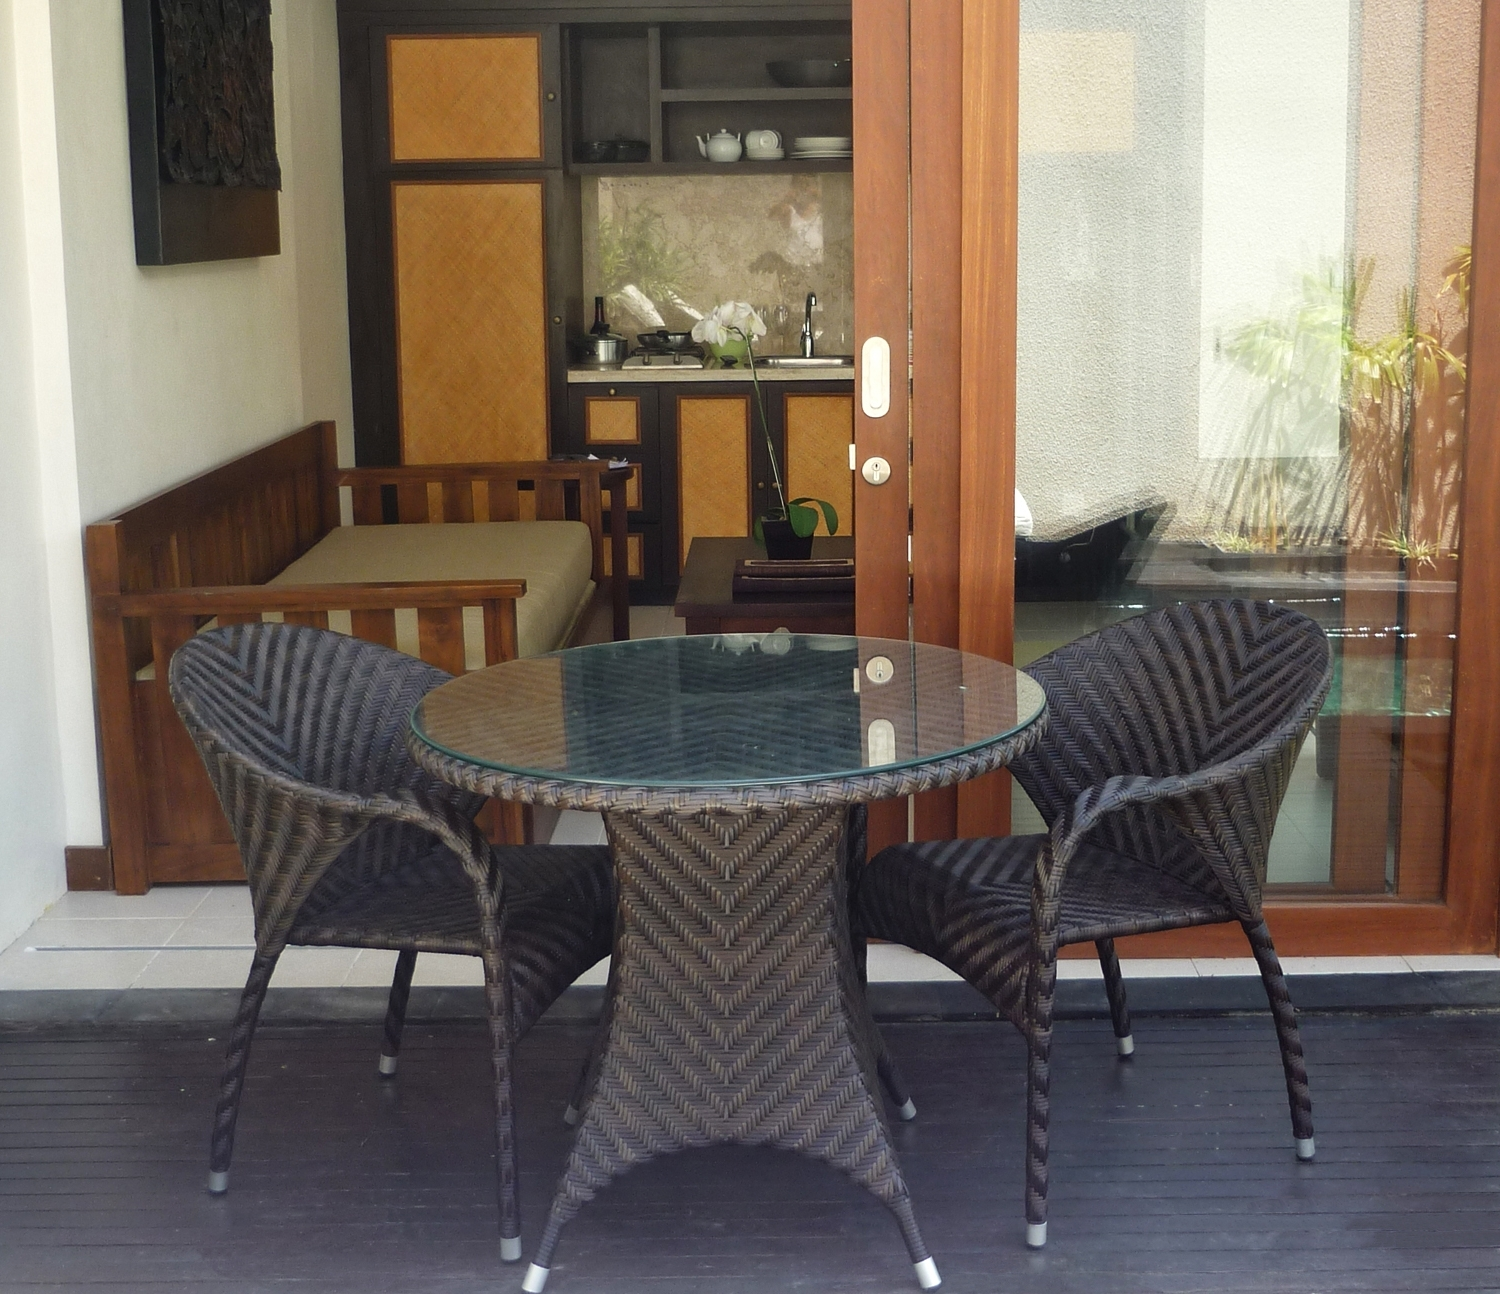 Bathroom And Pool : Bali Furniture Outdoor Dining Table Chair Regarding Most Recent Bali Dining Tables (Gallery 25 of 25)